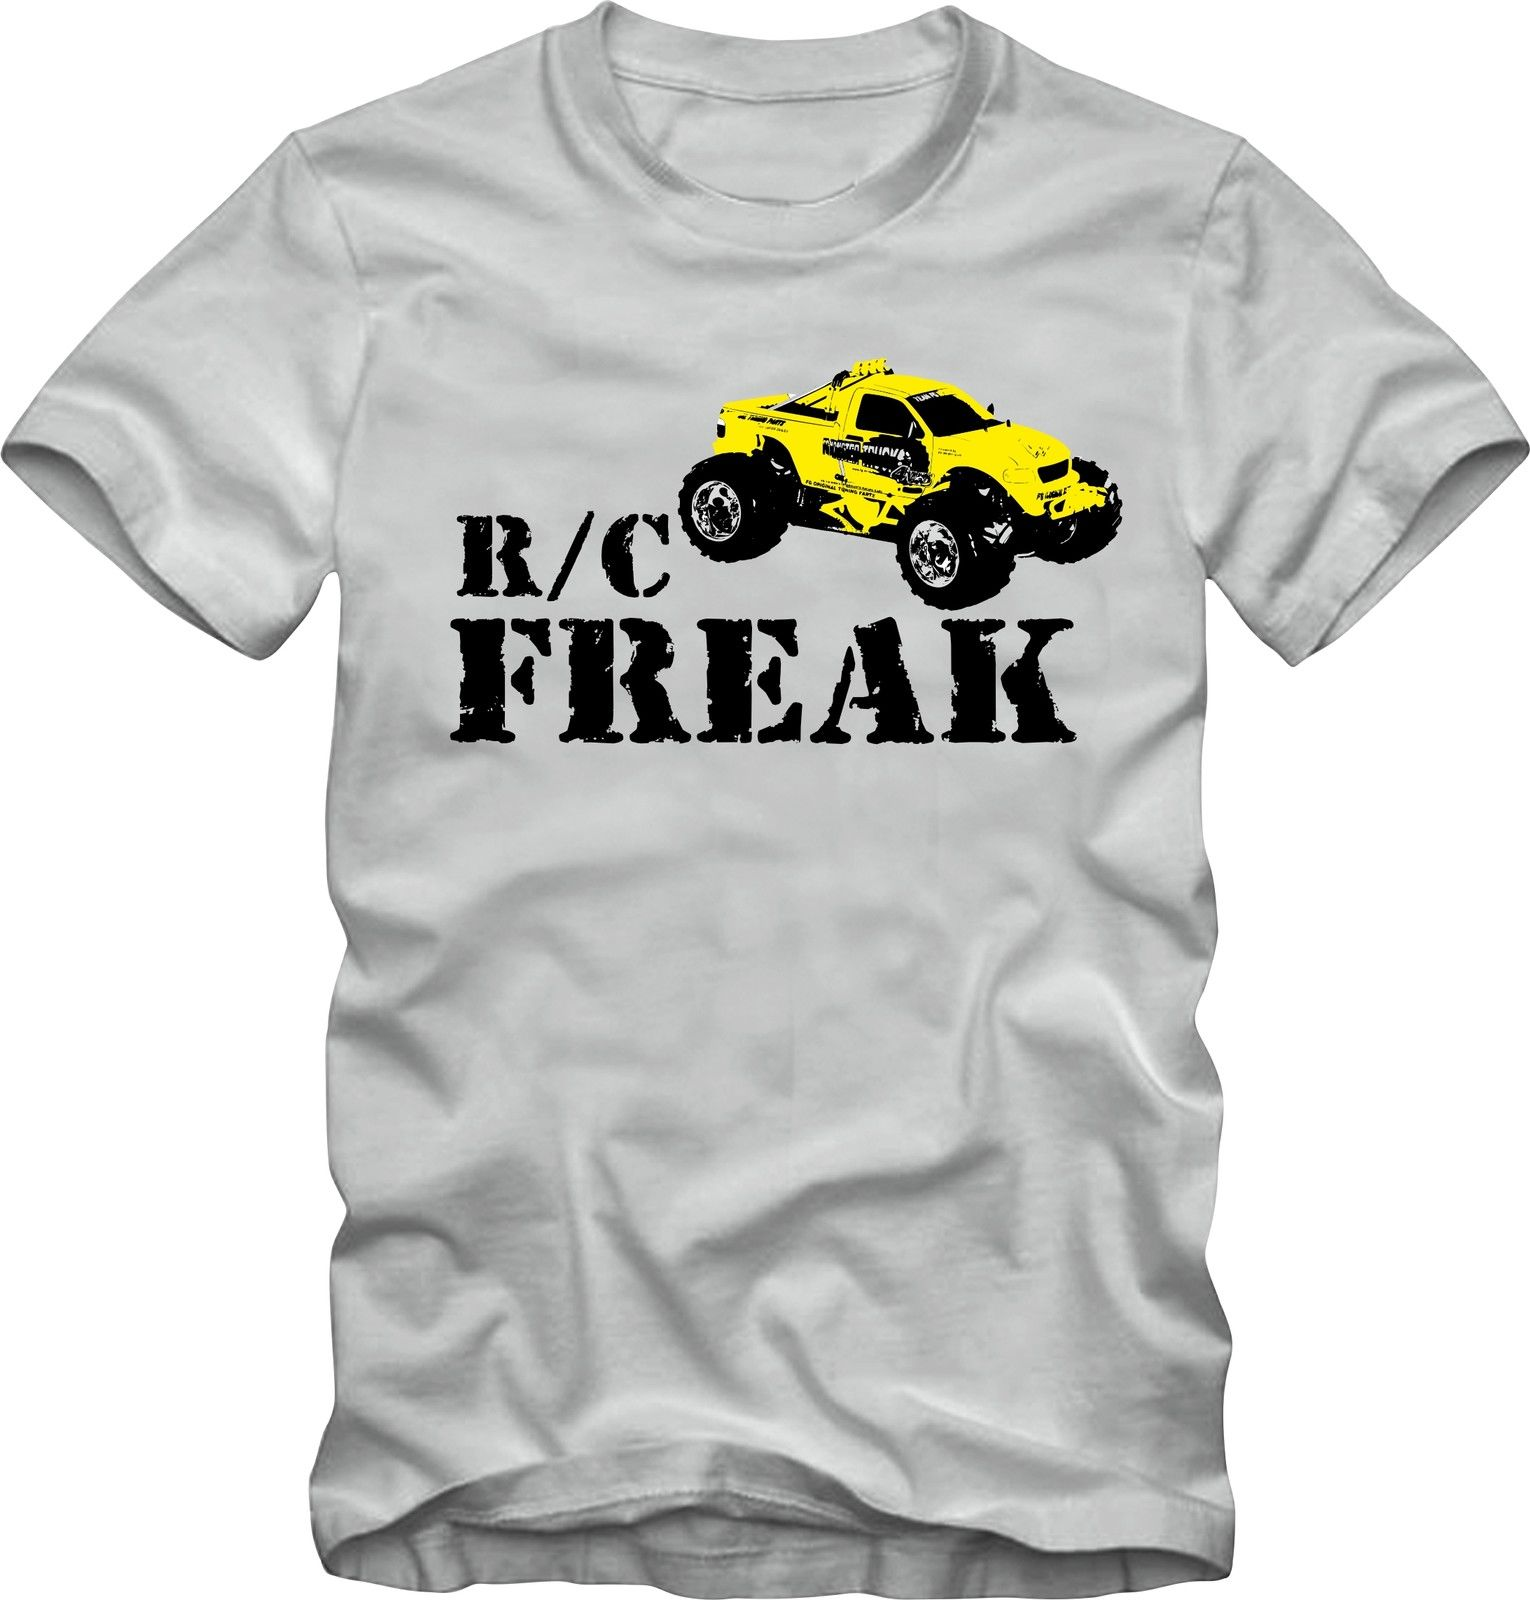 2018 Hot sale FG Truck T-Shirt R/C Freak Fan Shirt Carson